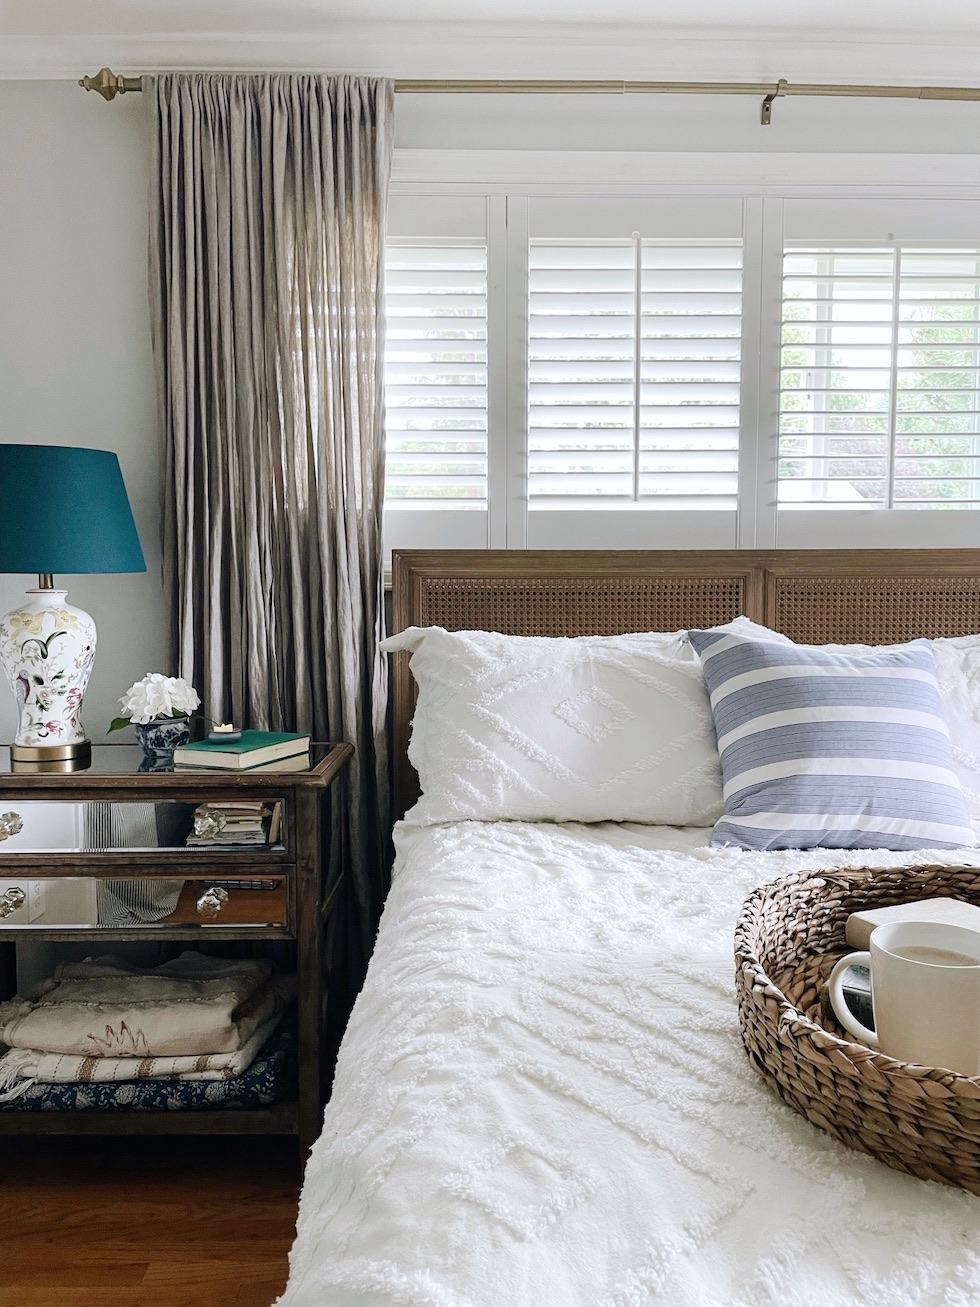 Six favorite tips for decorating a summer bedroom